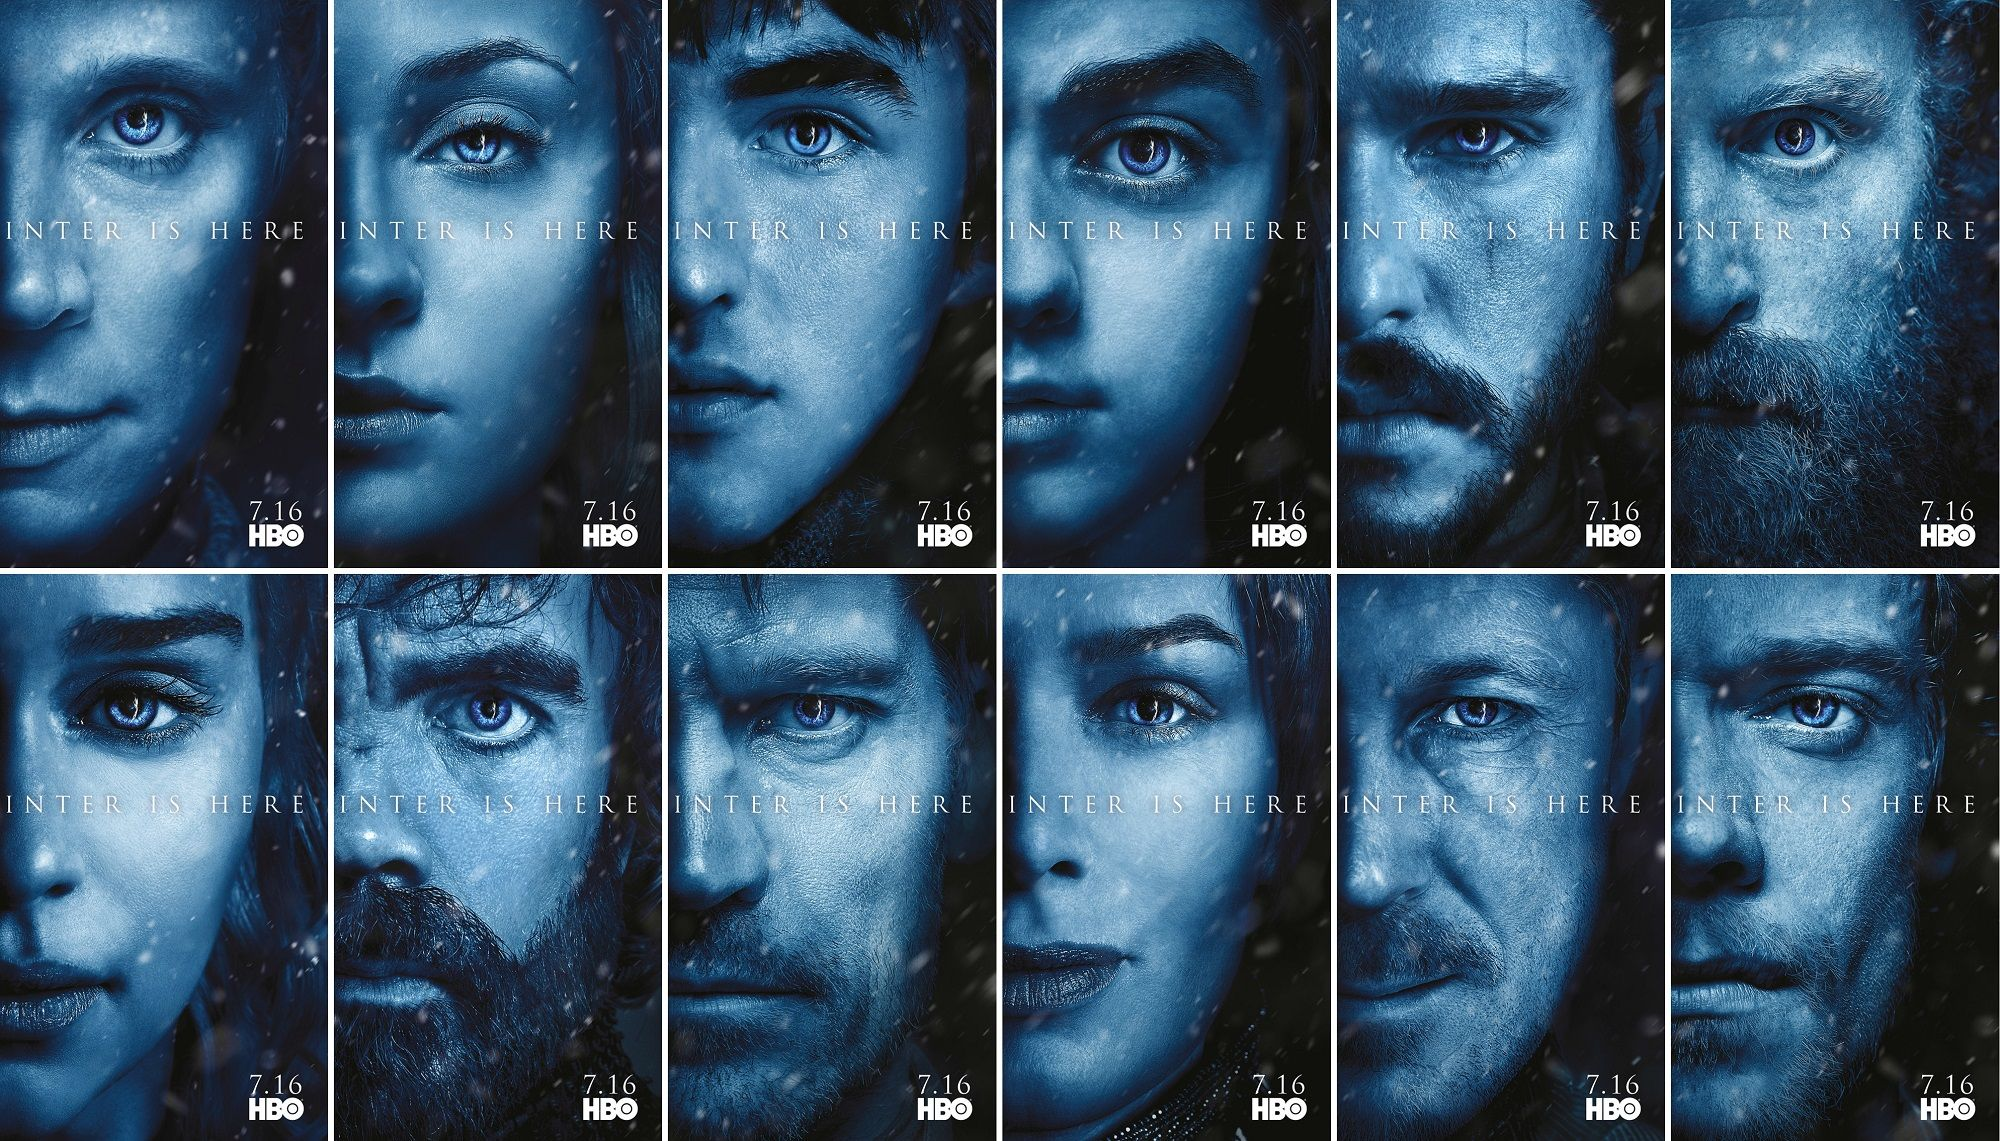 Pin By Leslie Sexton On A Song Of Fire And Ice Game Of Thrones Game Of Thrones S7 Game Of Thrones Tv Ice Game Of Thrones